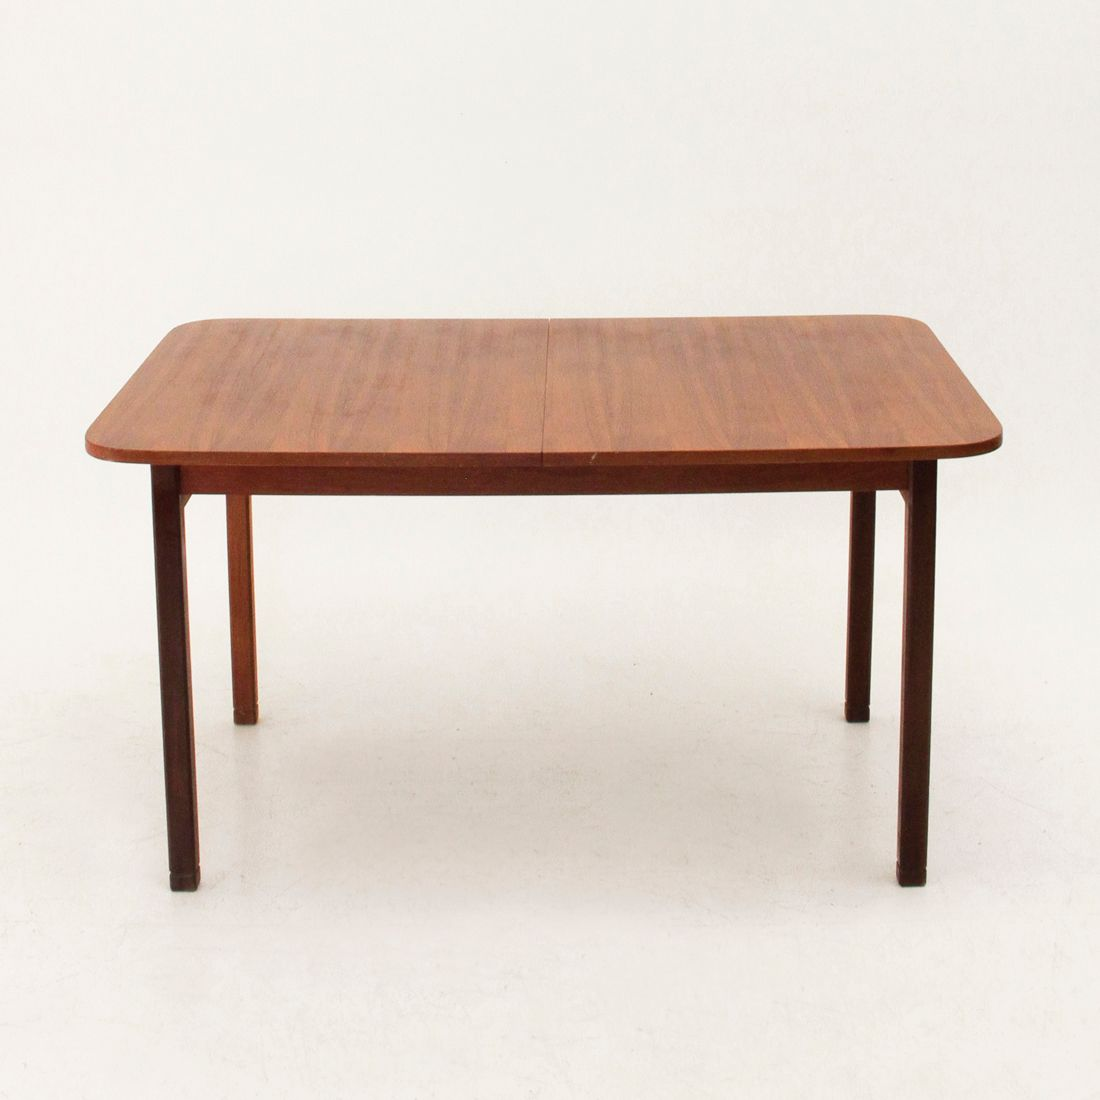 italian extensible dining table 1960s for sale at pamono On table exterieure extensible